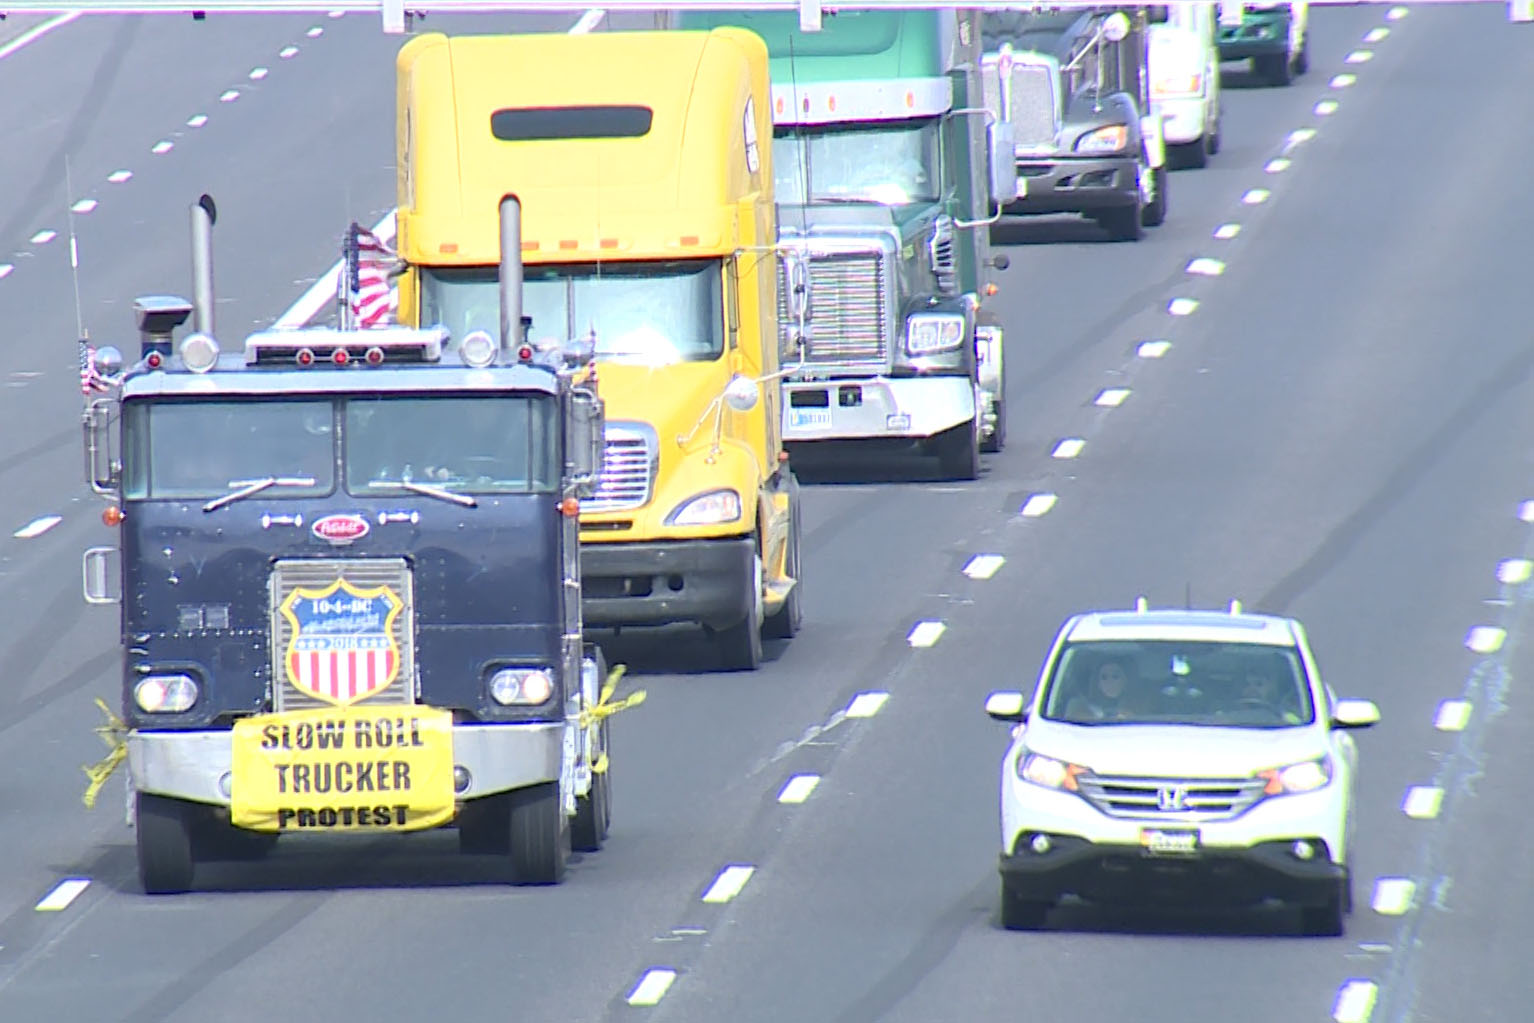 The drivers cruised at slow 45 mph on I-465.